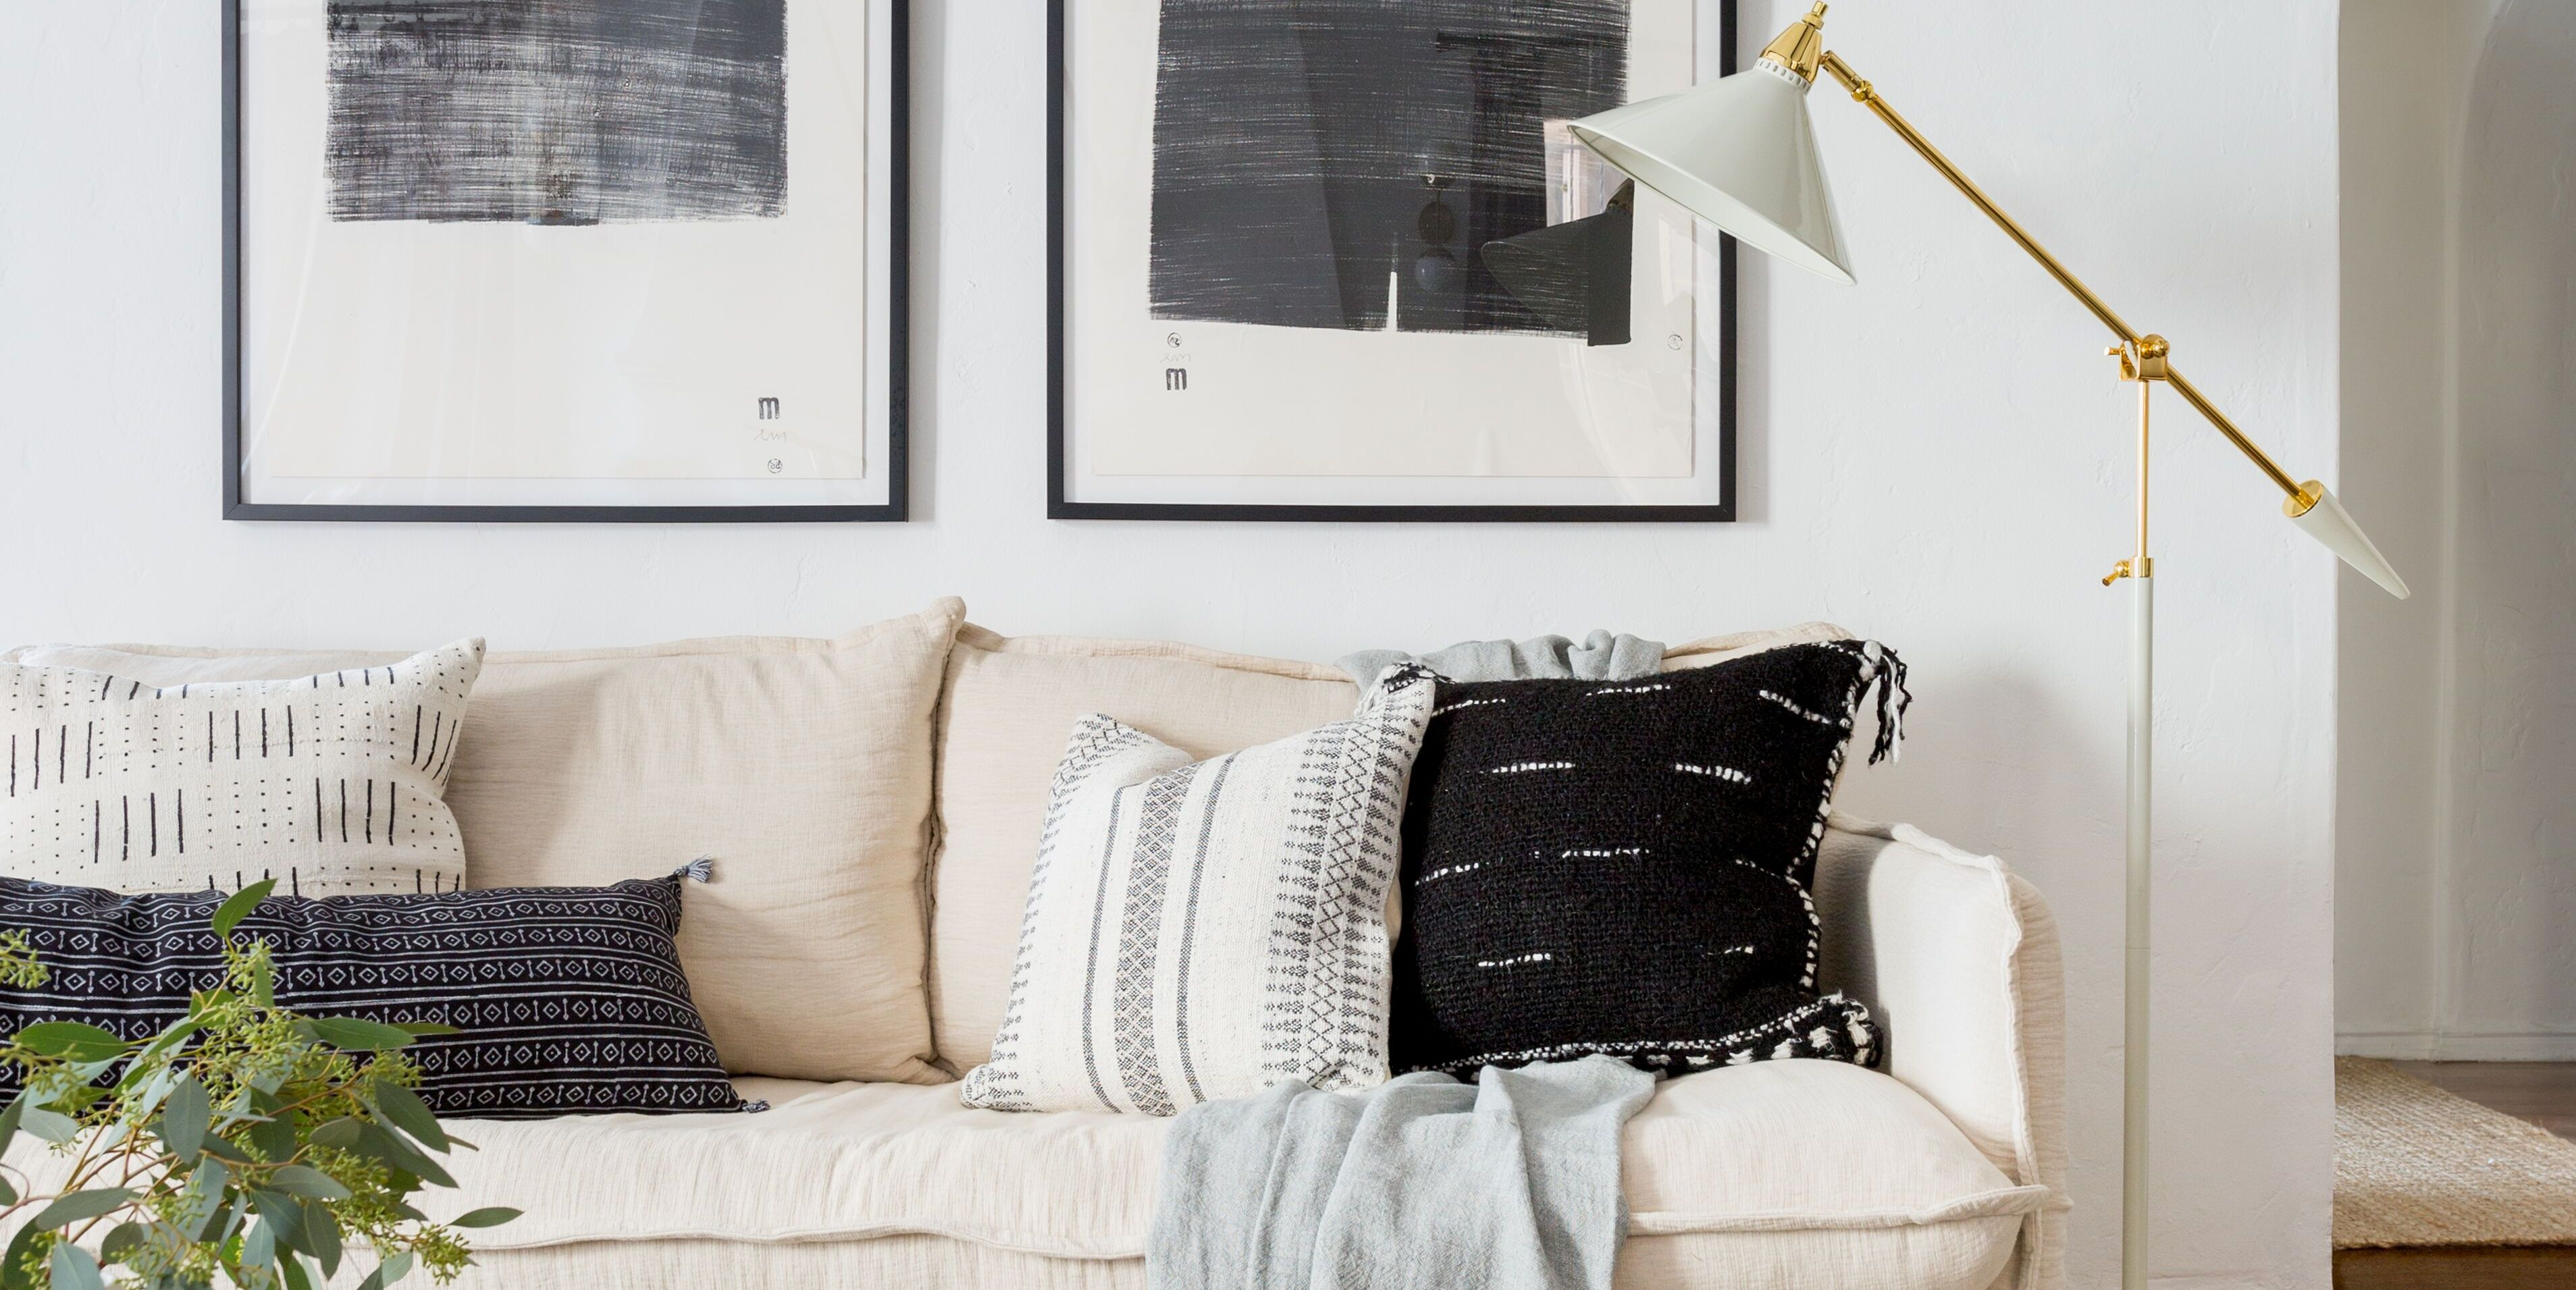 Brady Tolbert Reveals The Styling Tricks That Instantly Make A Room Look Polished